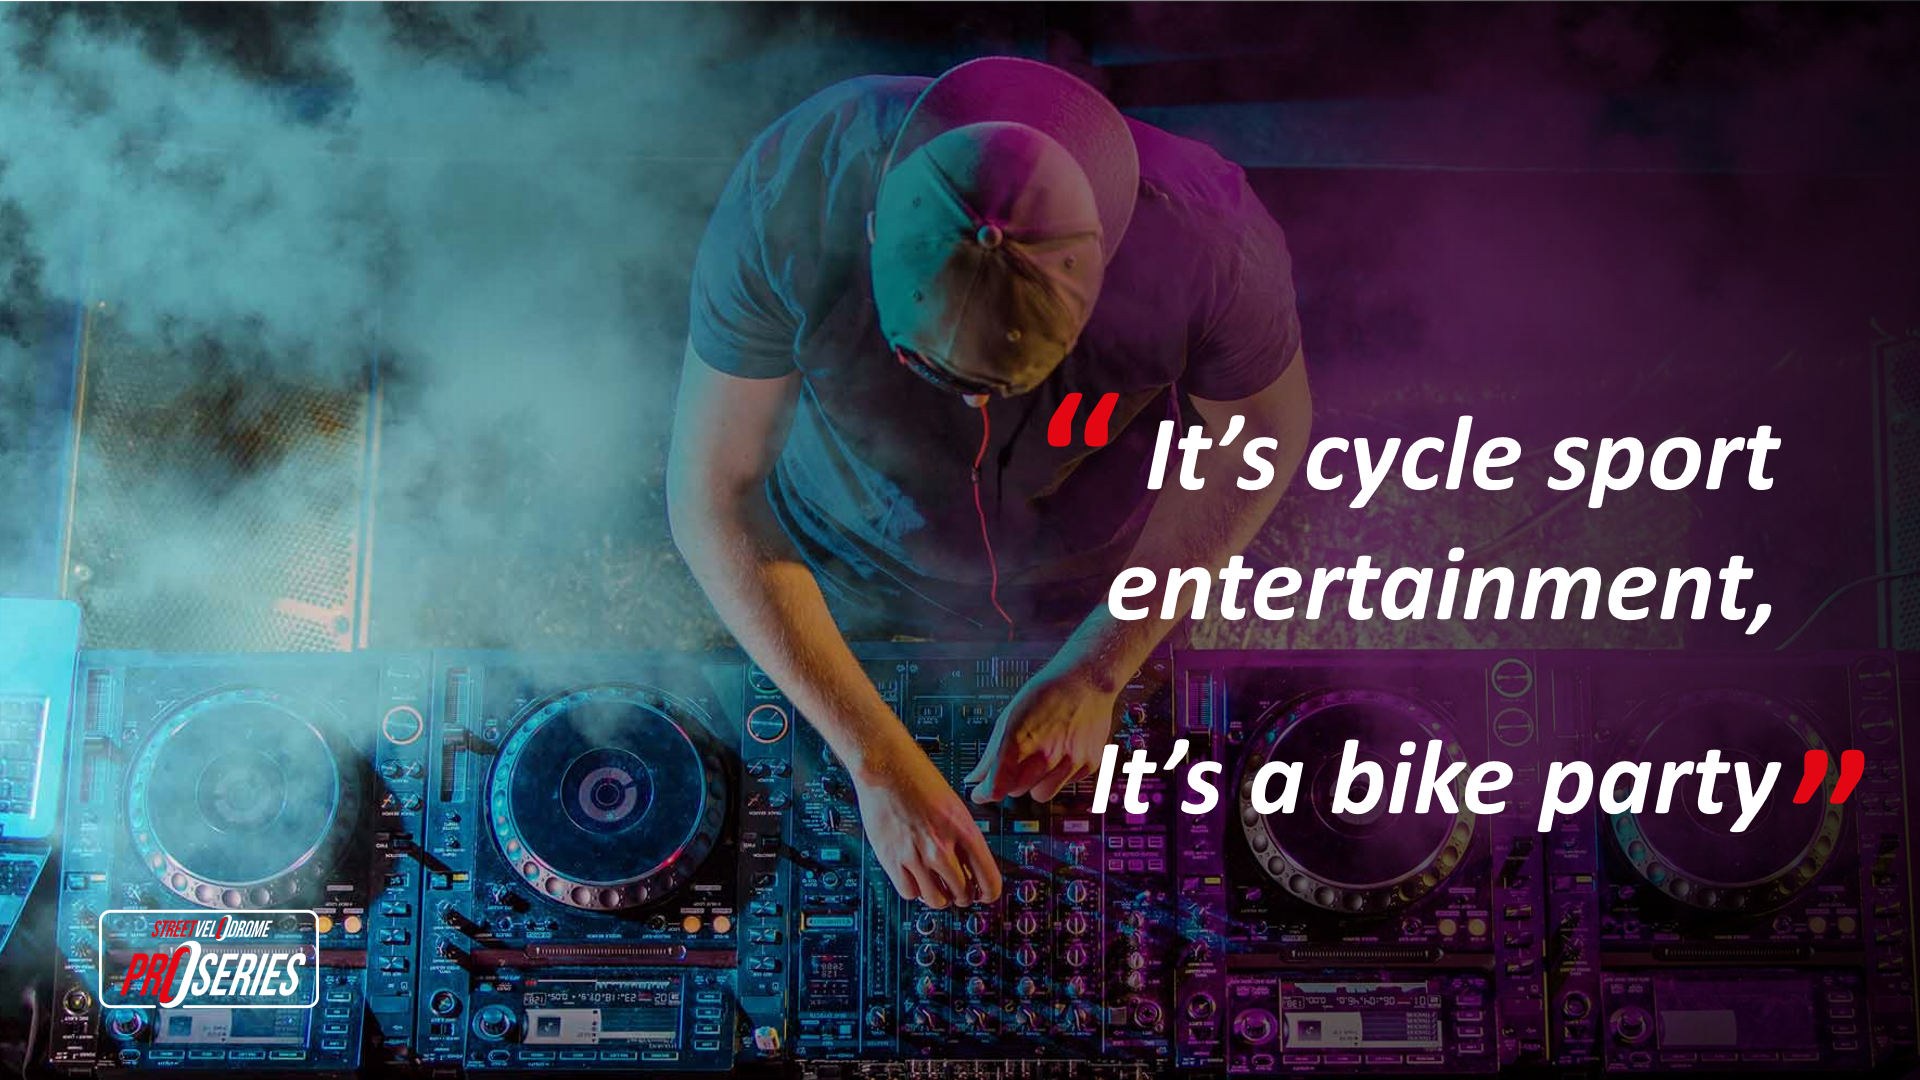 It's cycle sport entertainment